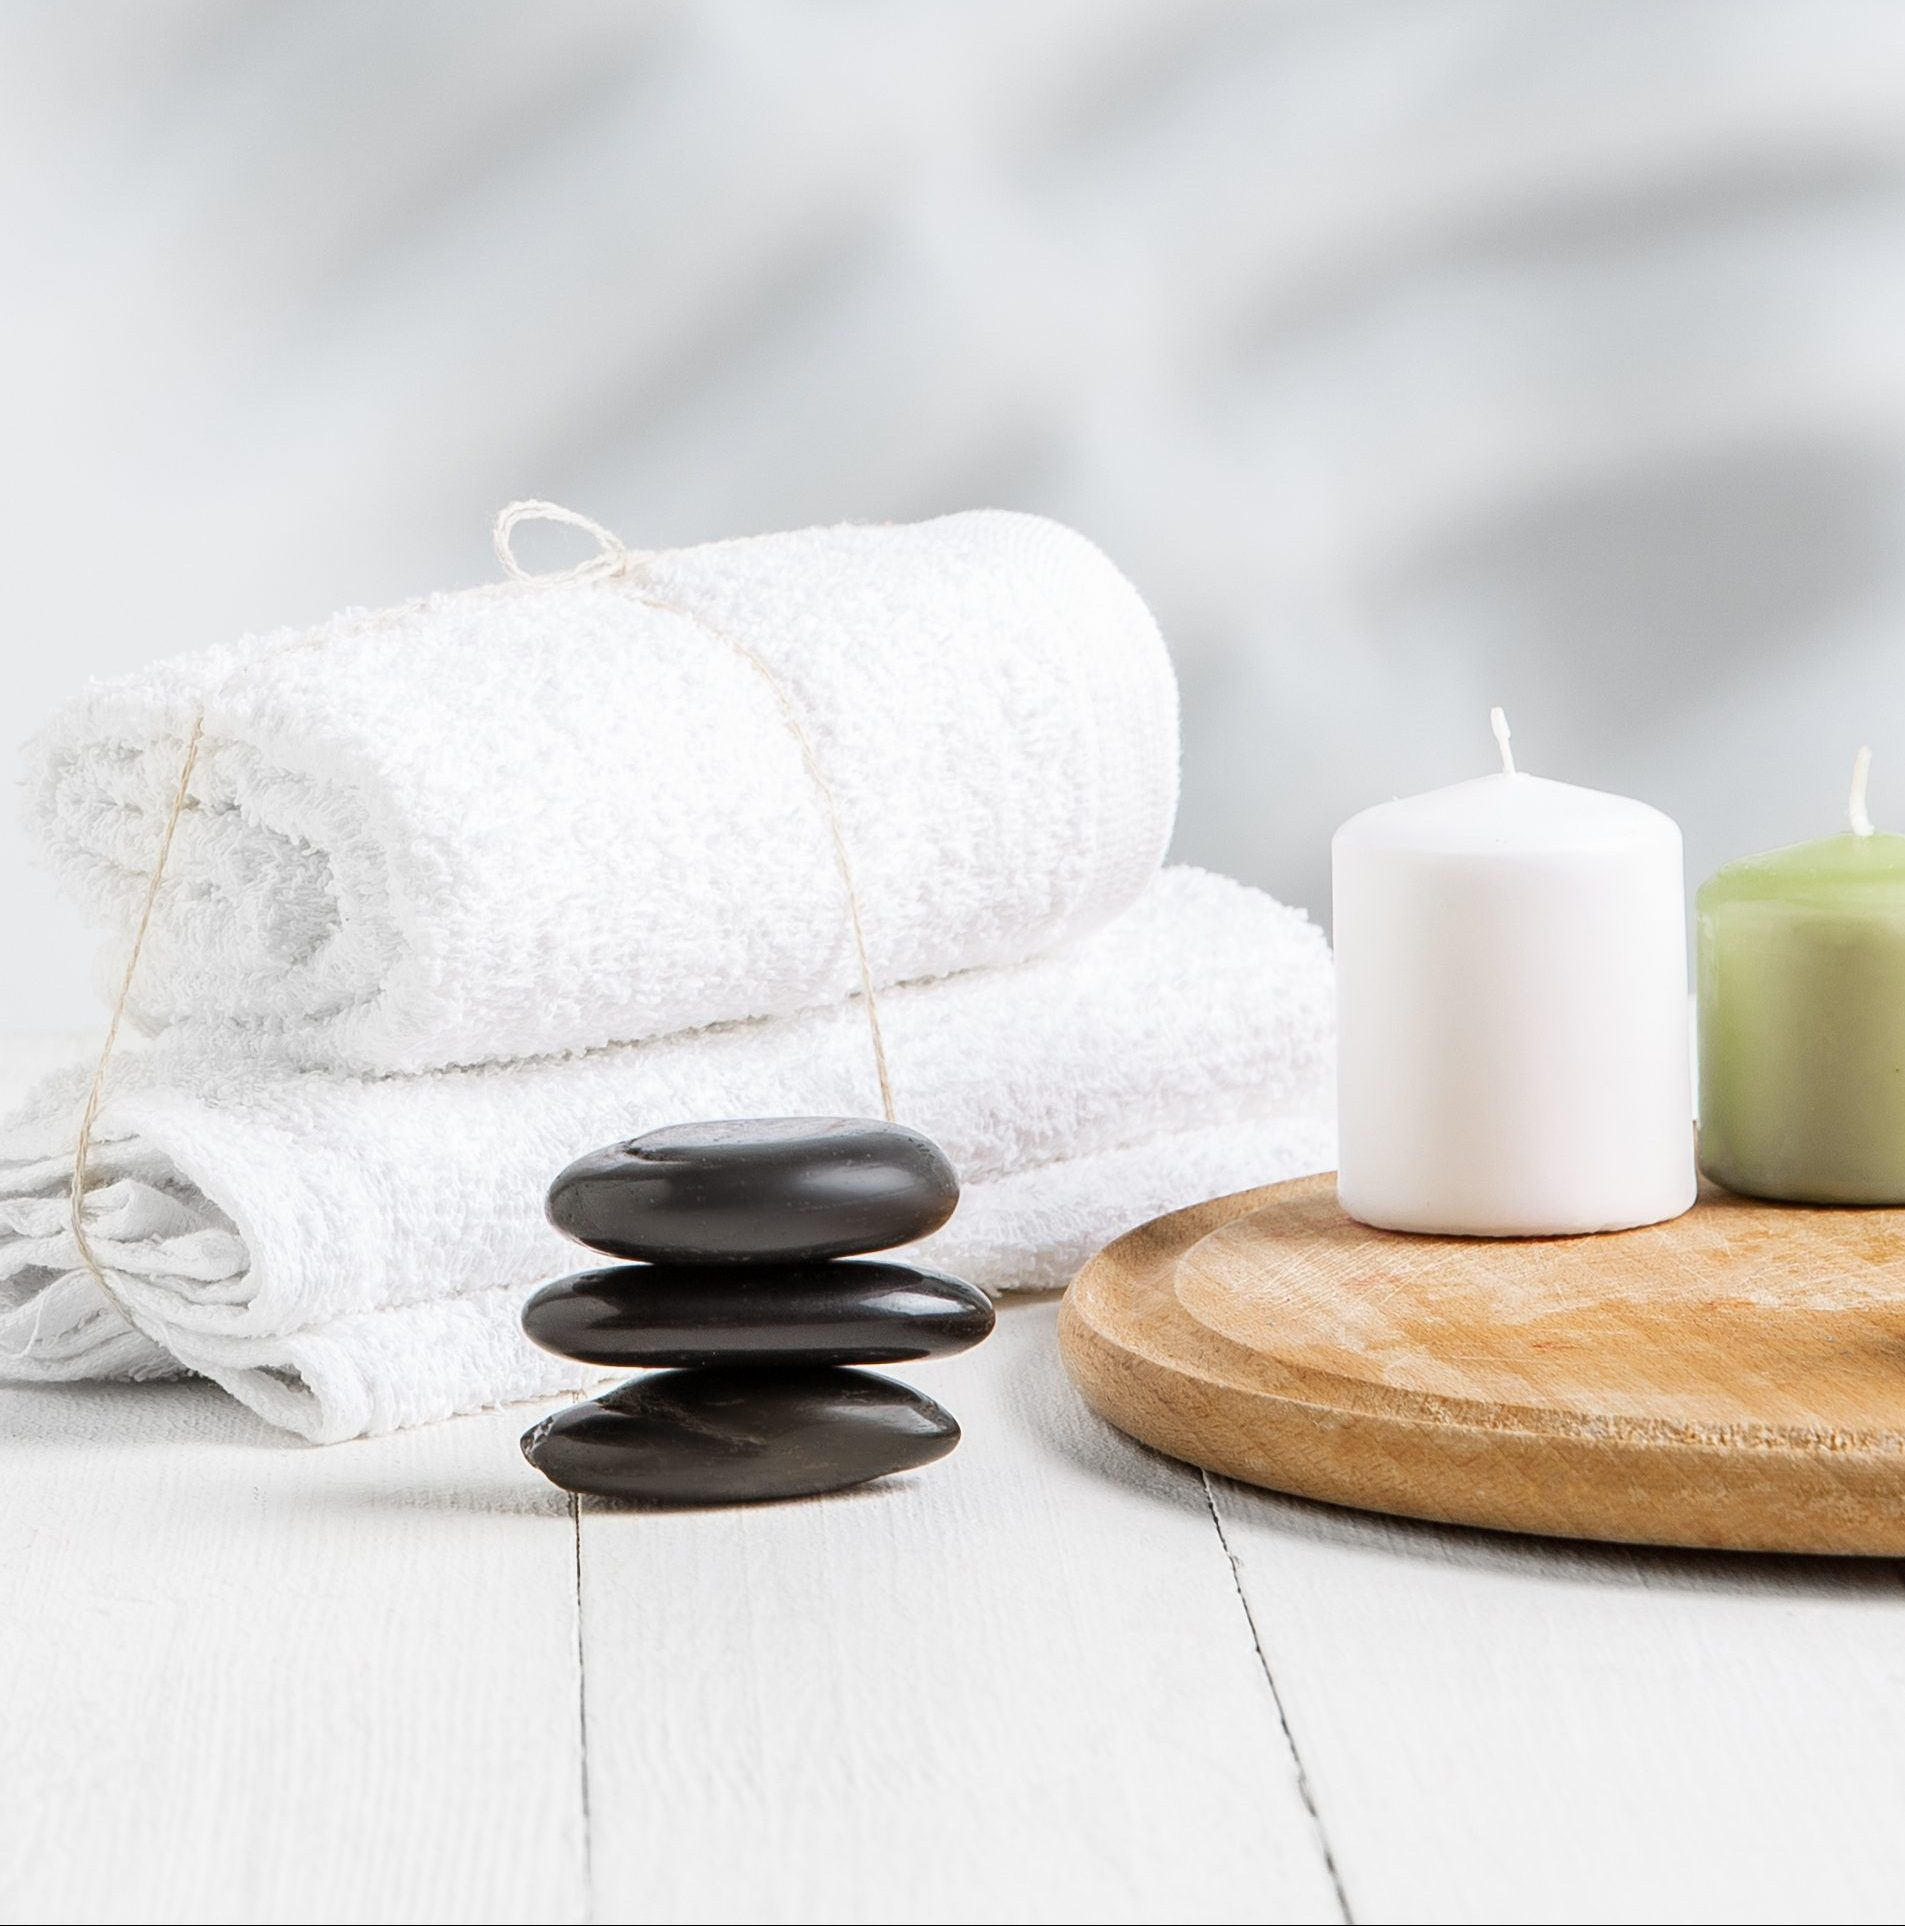 Beautiful spa composition on massage table in wellness center, copyspace